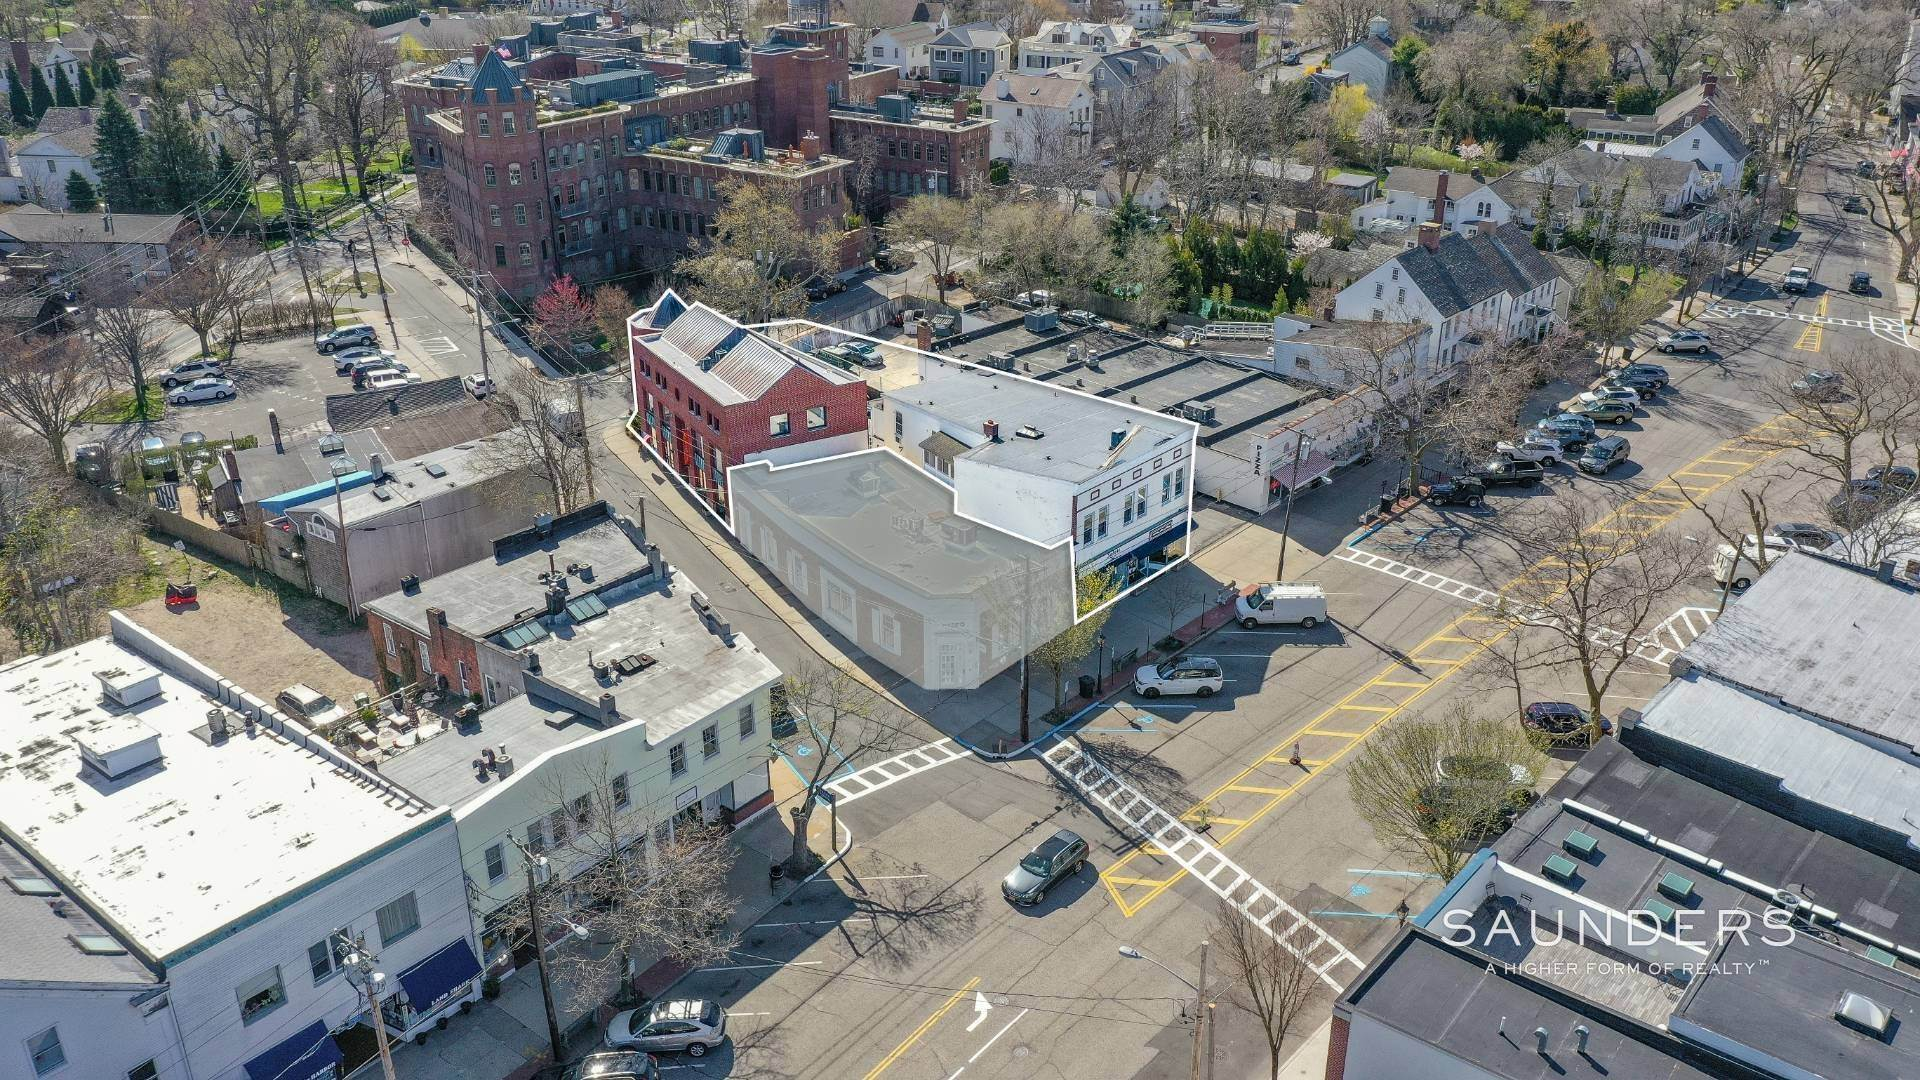 Commercial for Sale at Just Listed! Sag Harbor Main St. Commercial- Mixed Use 95 Main Street Or 75 Washington Street, Sag Harbor, Southampton Town, NY 11963